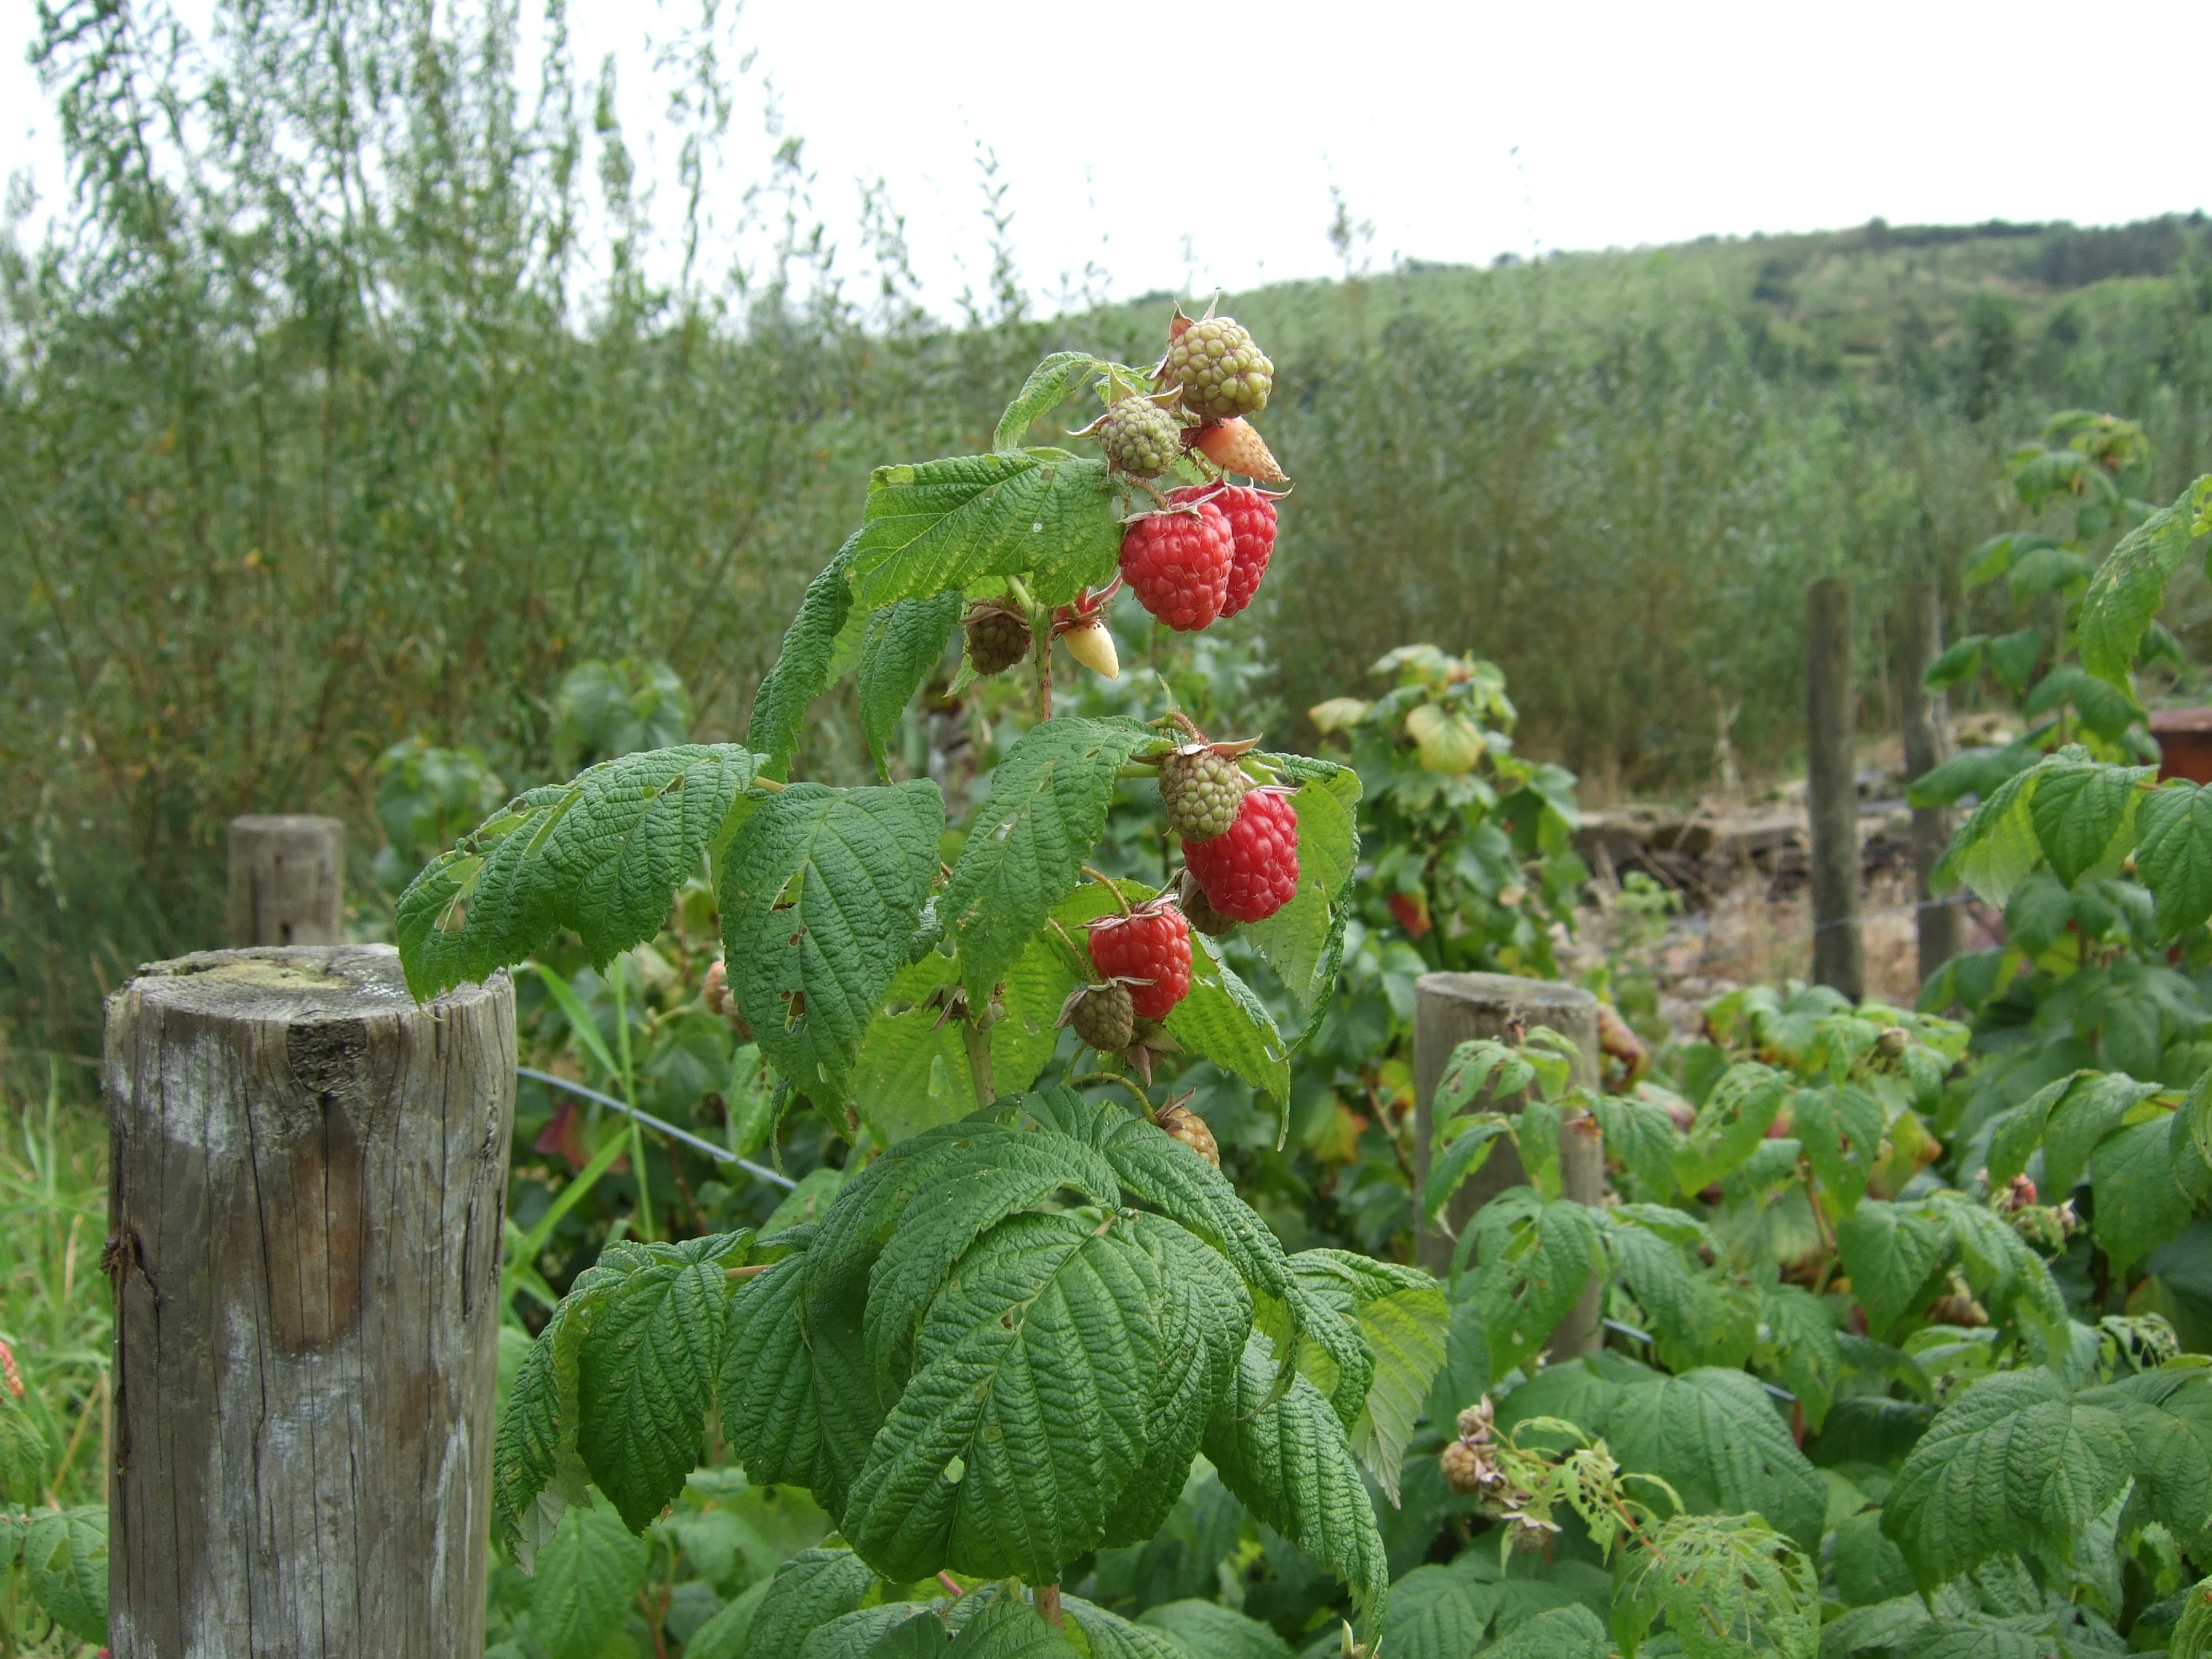 Raspberries for sale, Helmshore